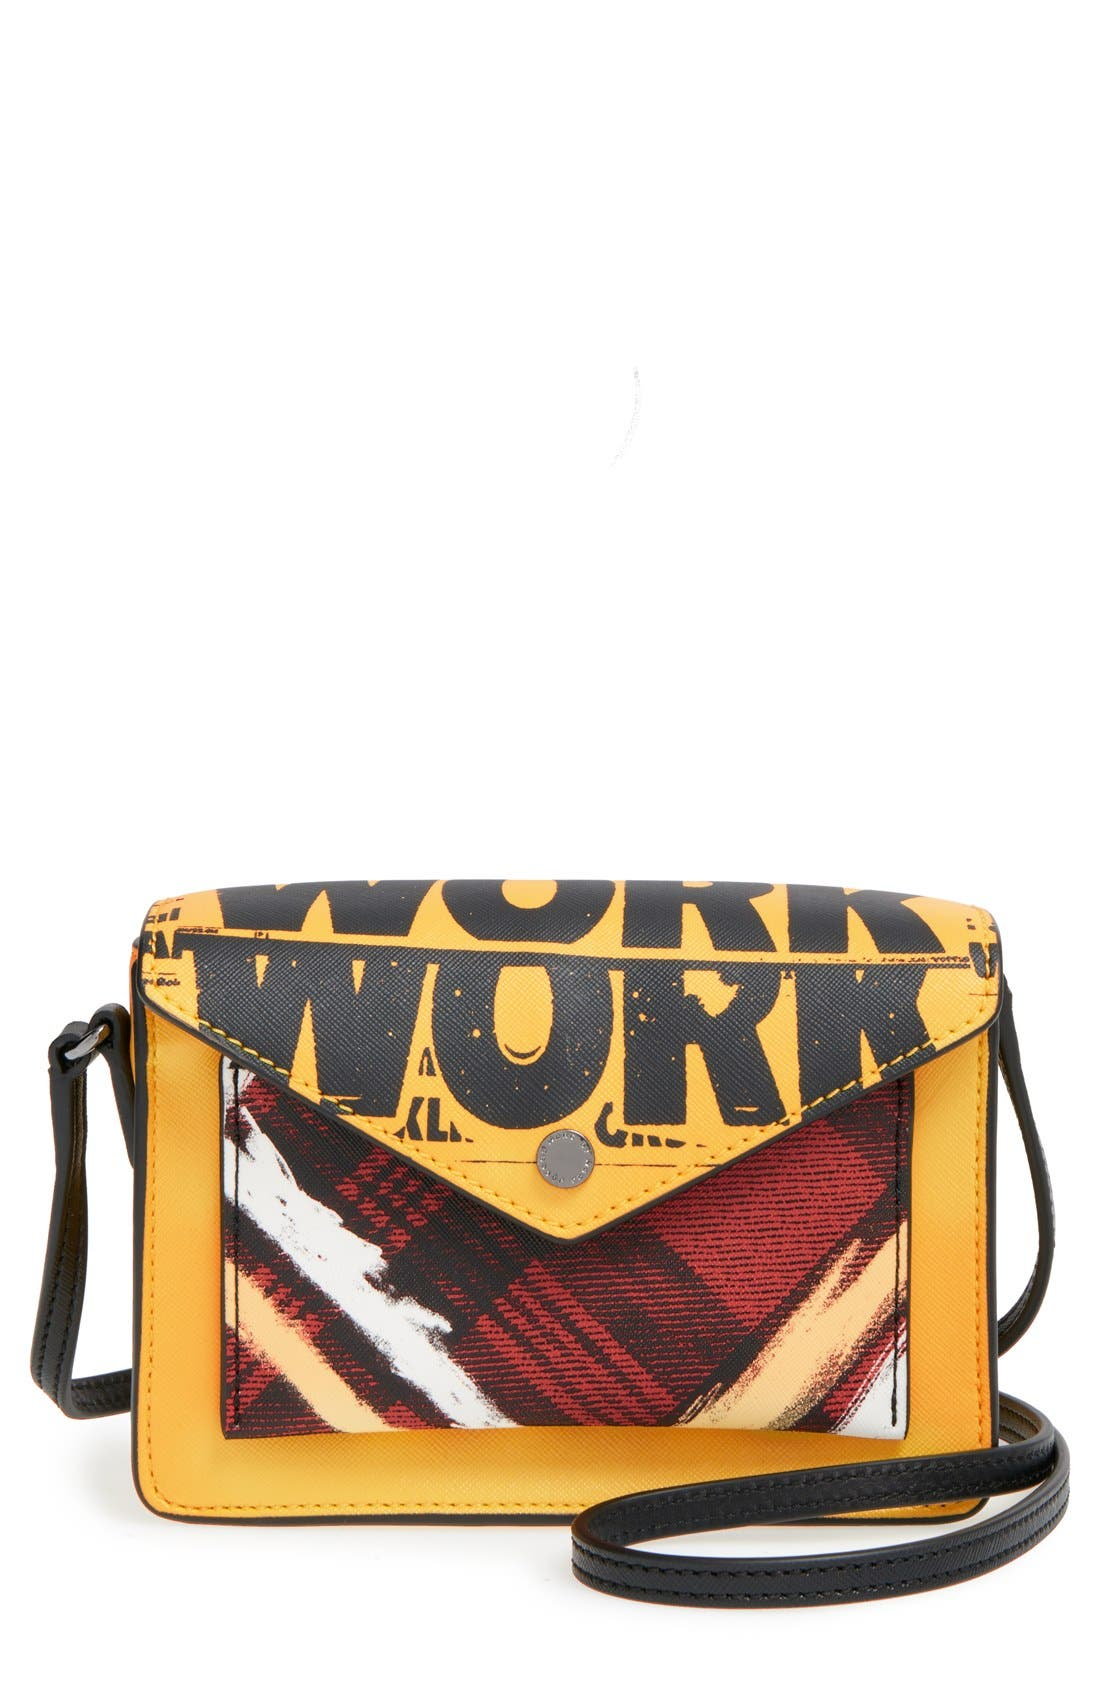 Alternate Image 1 Selected - MARC BY MARC JACOBS 'Metropoli' Envelope Crossbody Bag